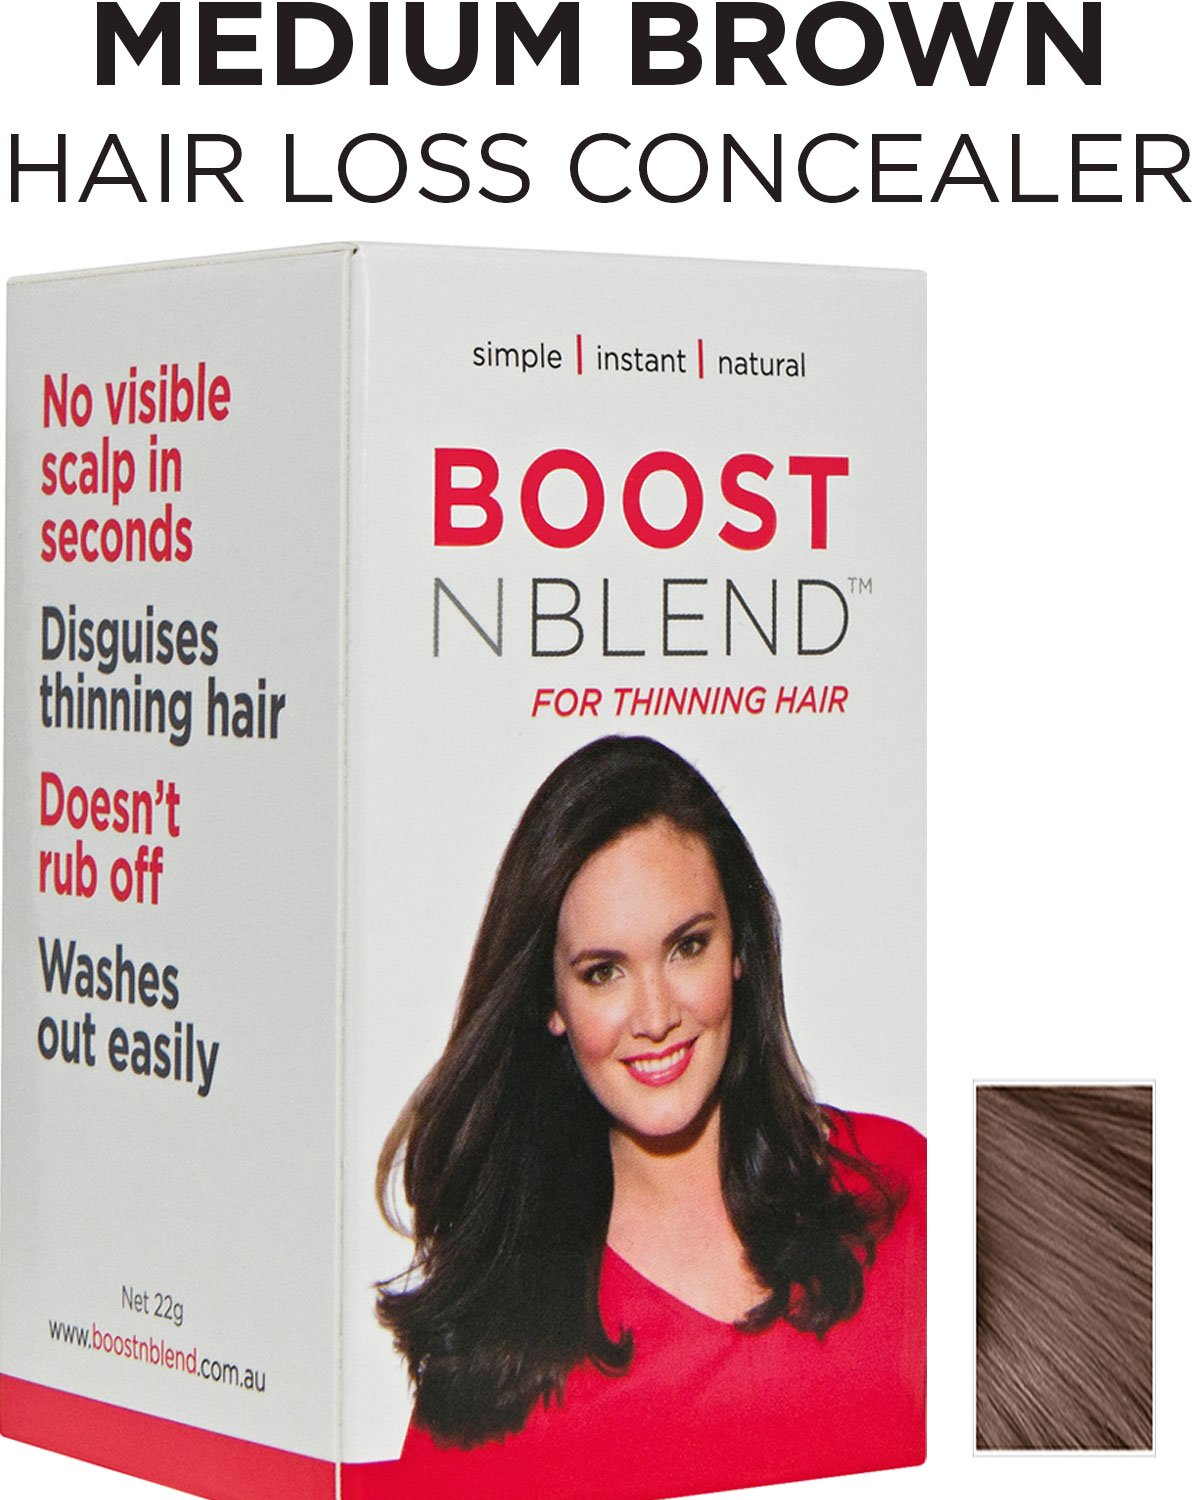 Boostnblend Blonde Hair Loss Scalp Concealer For Women With Thinning